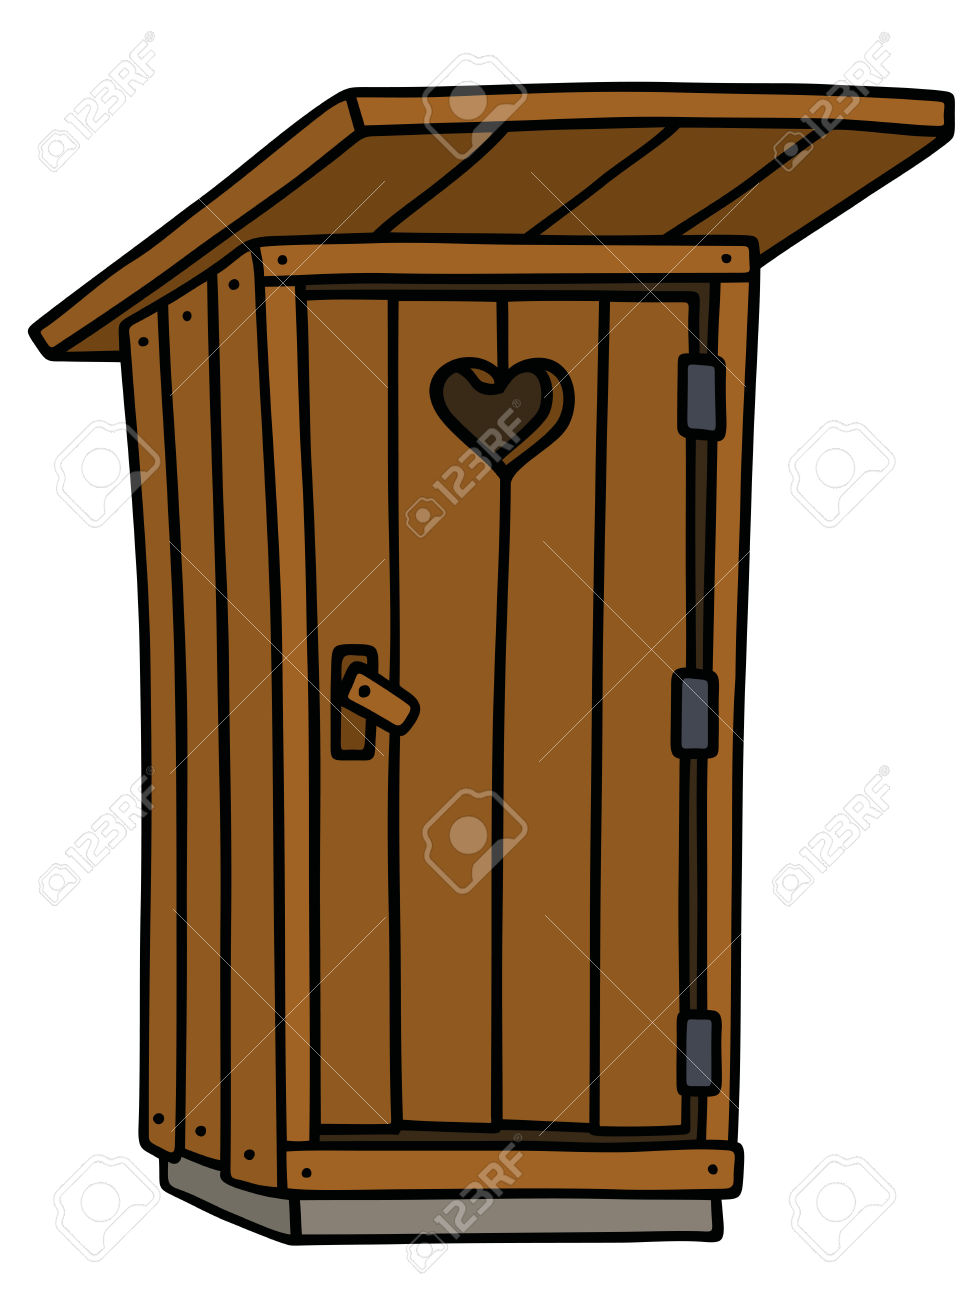 Hand Drawing Of A Funny Old Wooden Latrine Shack Royalty Free.